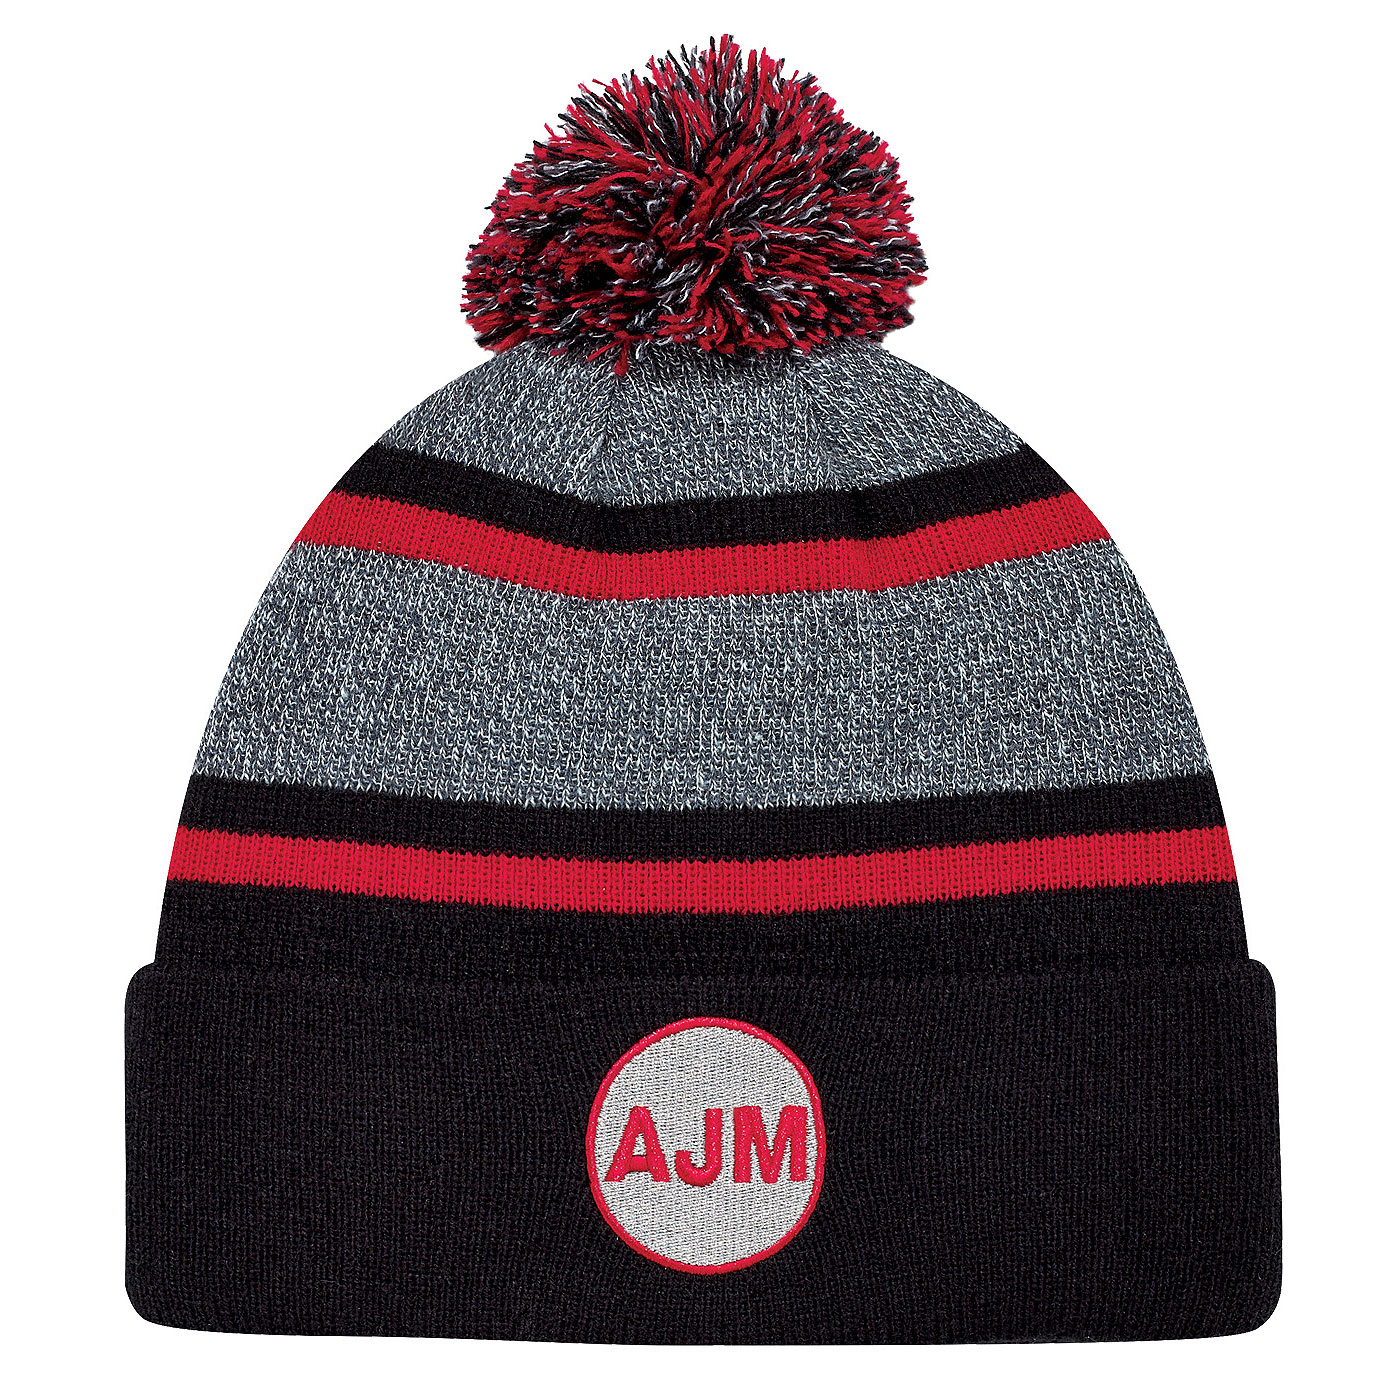 895cce76c78 Marl   Stripe Board Toque With Pom - Push Promotional Products -  Promotional Products